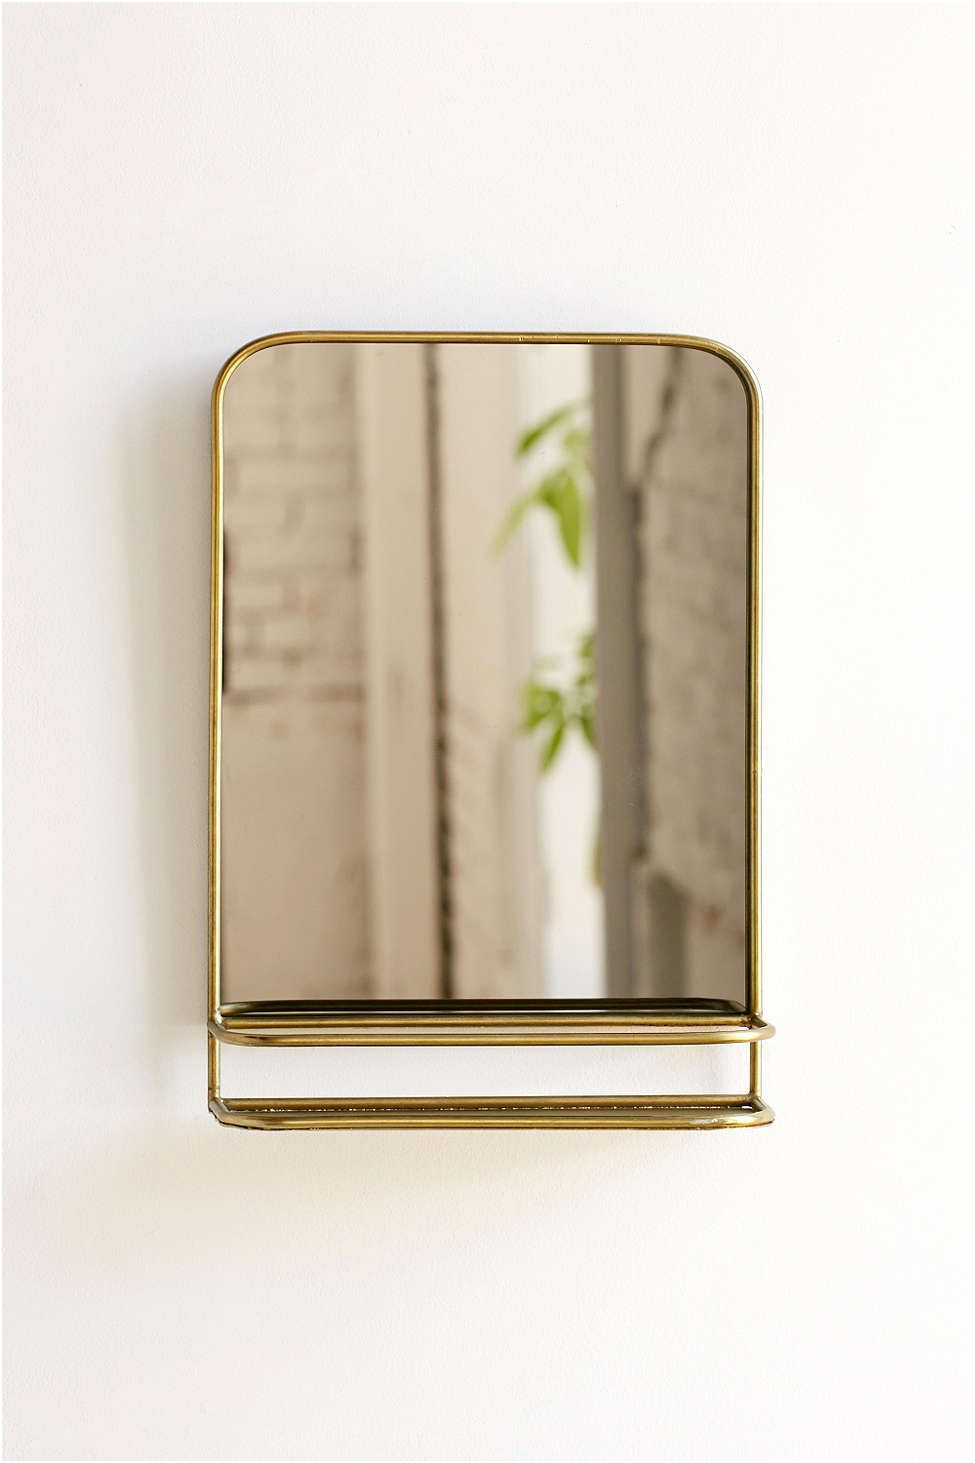 Inspirational Tilt Mirrors for Bathroom Rectangular